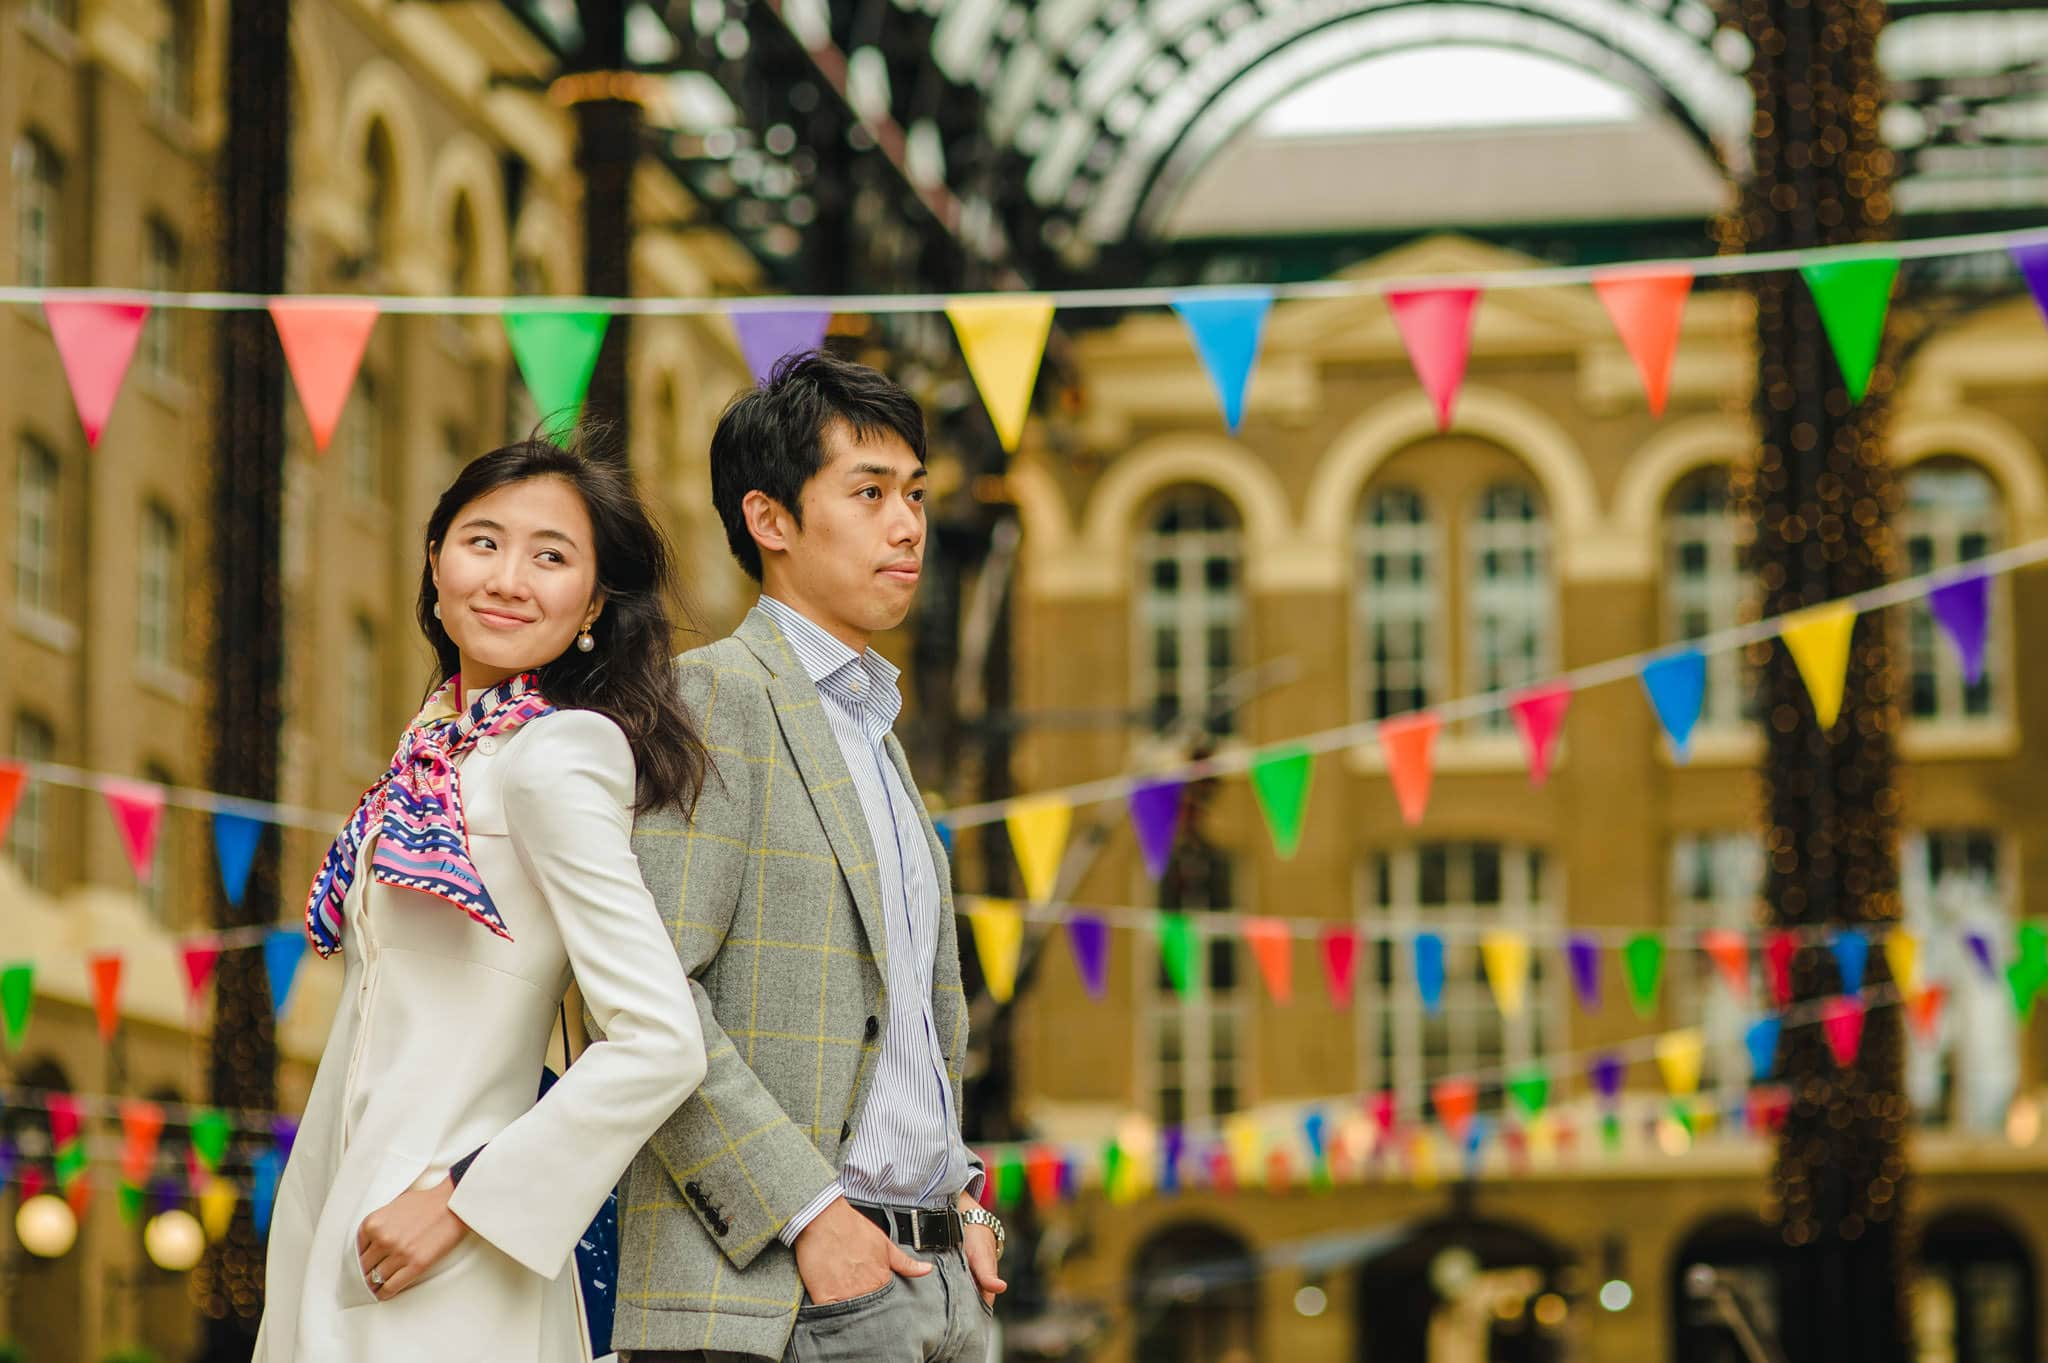 Yilin + Jason | London engagement session 8